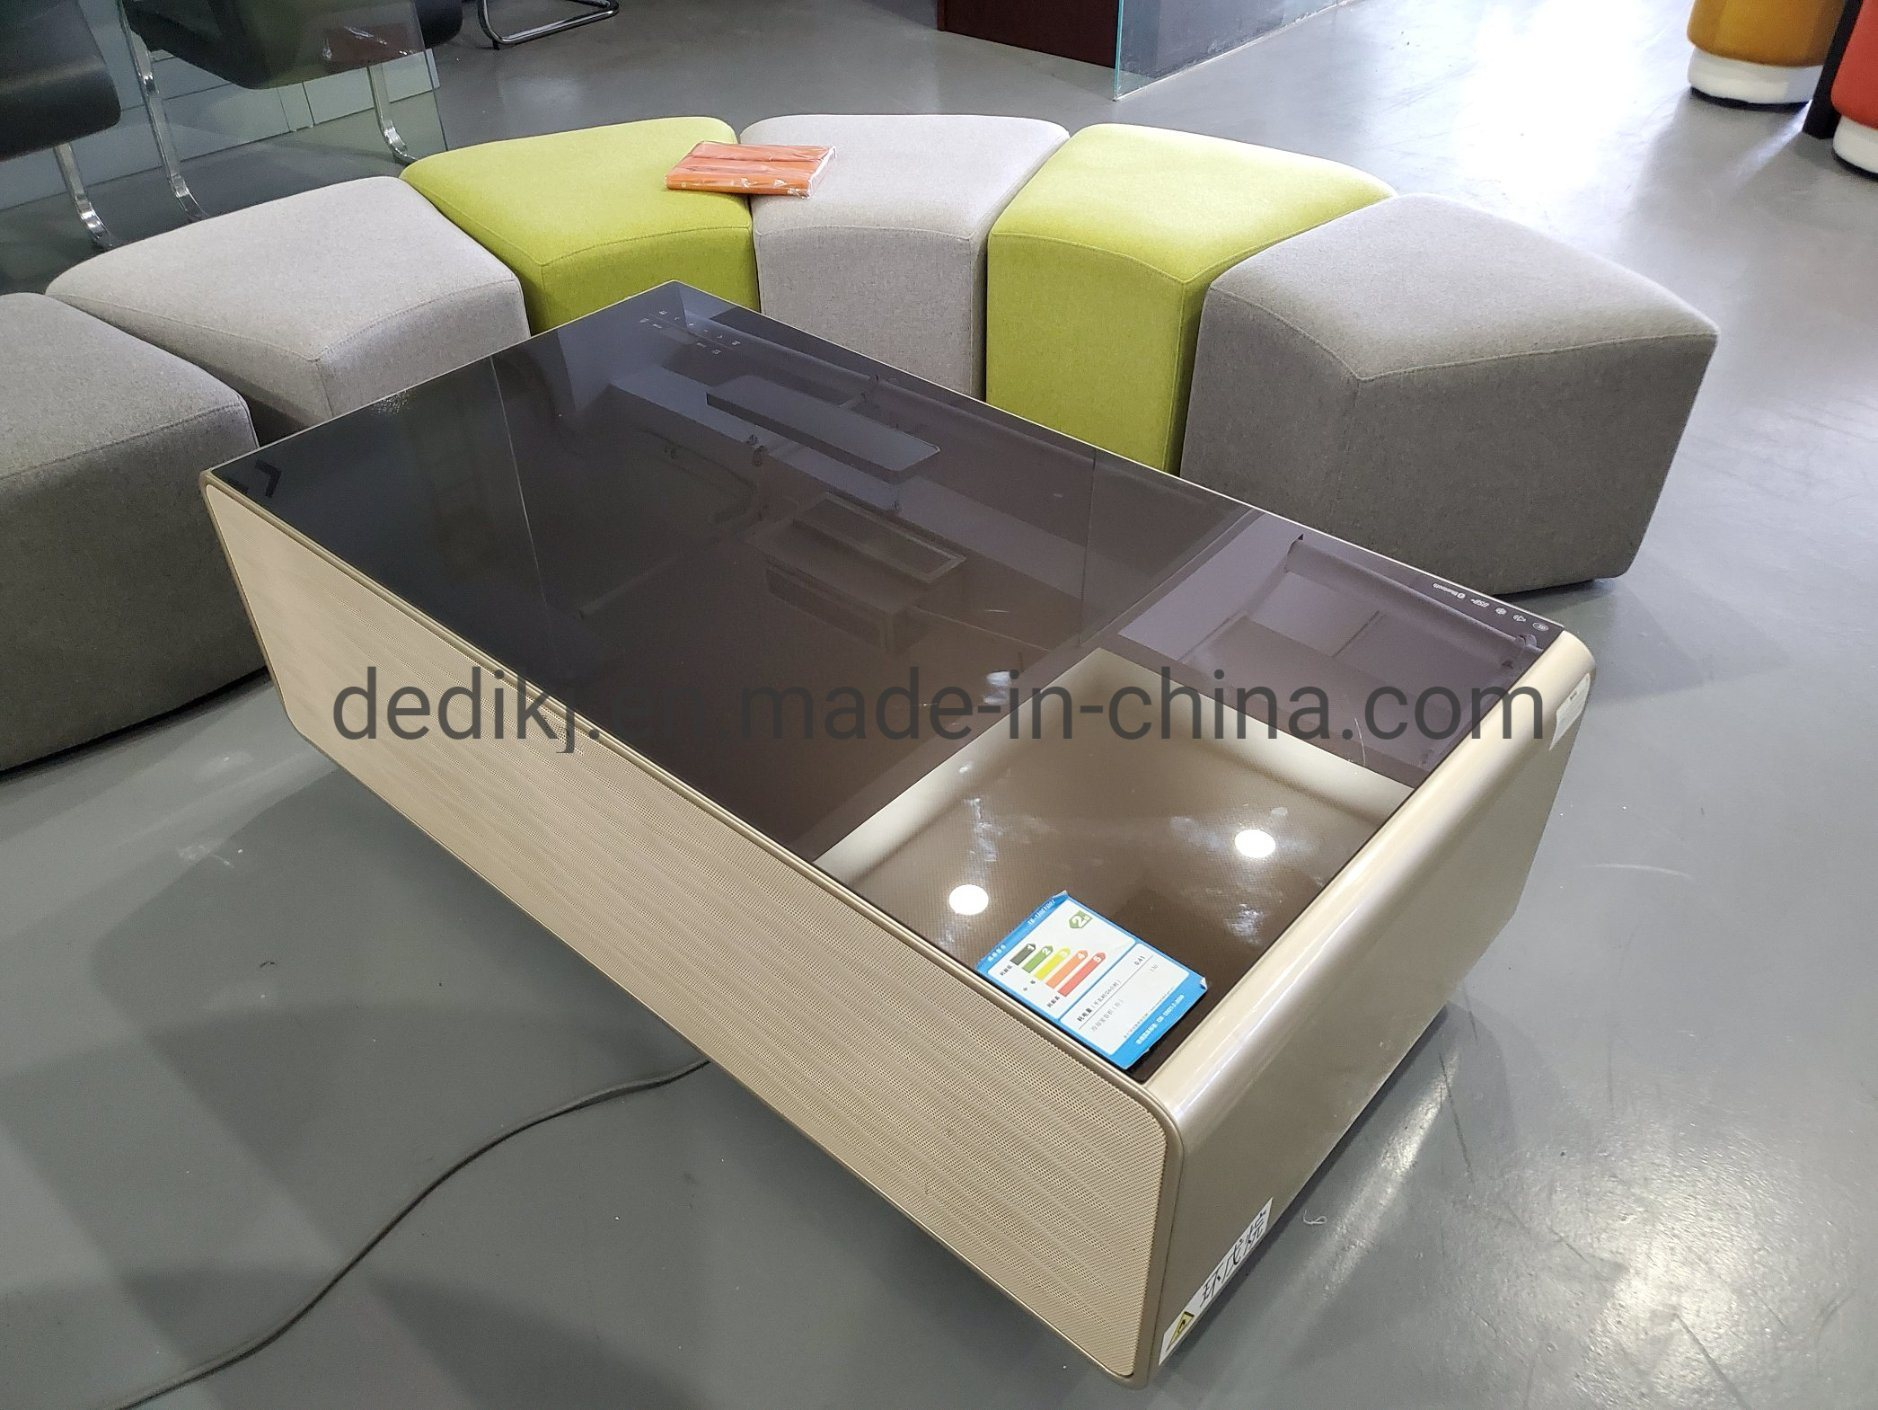 China Smart Fridge Wireless Charging Bluetooth With Smart Furniture Smart Side Table China Lcd Kiosk And Lcd Display Price